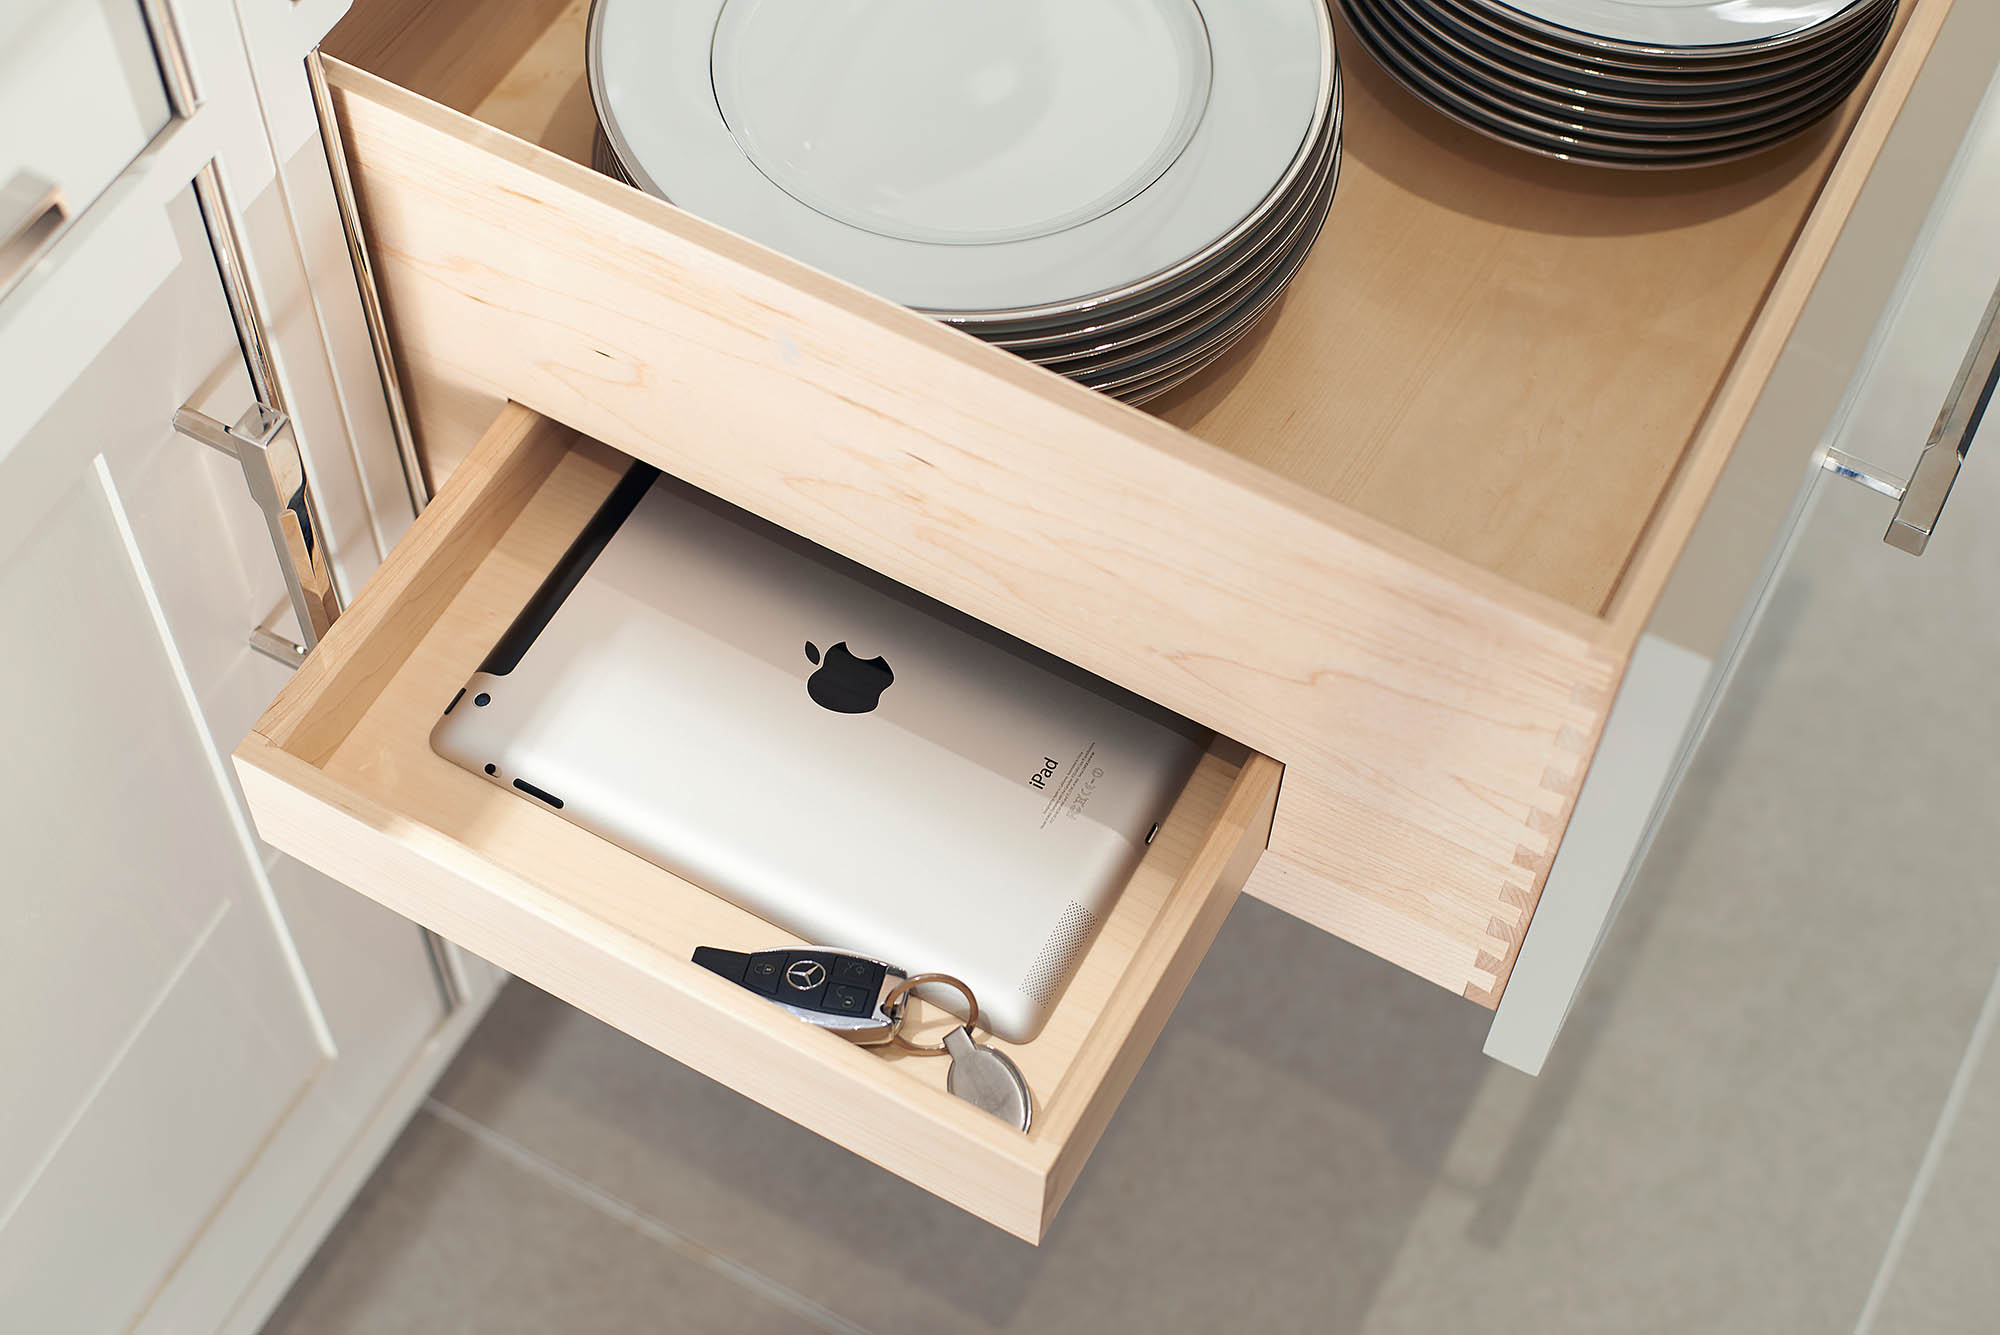 Secret drawer feature with iPad and Keys inside deep plate drawer for Coombe Estate Kitchen